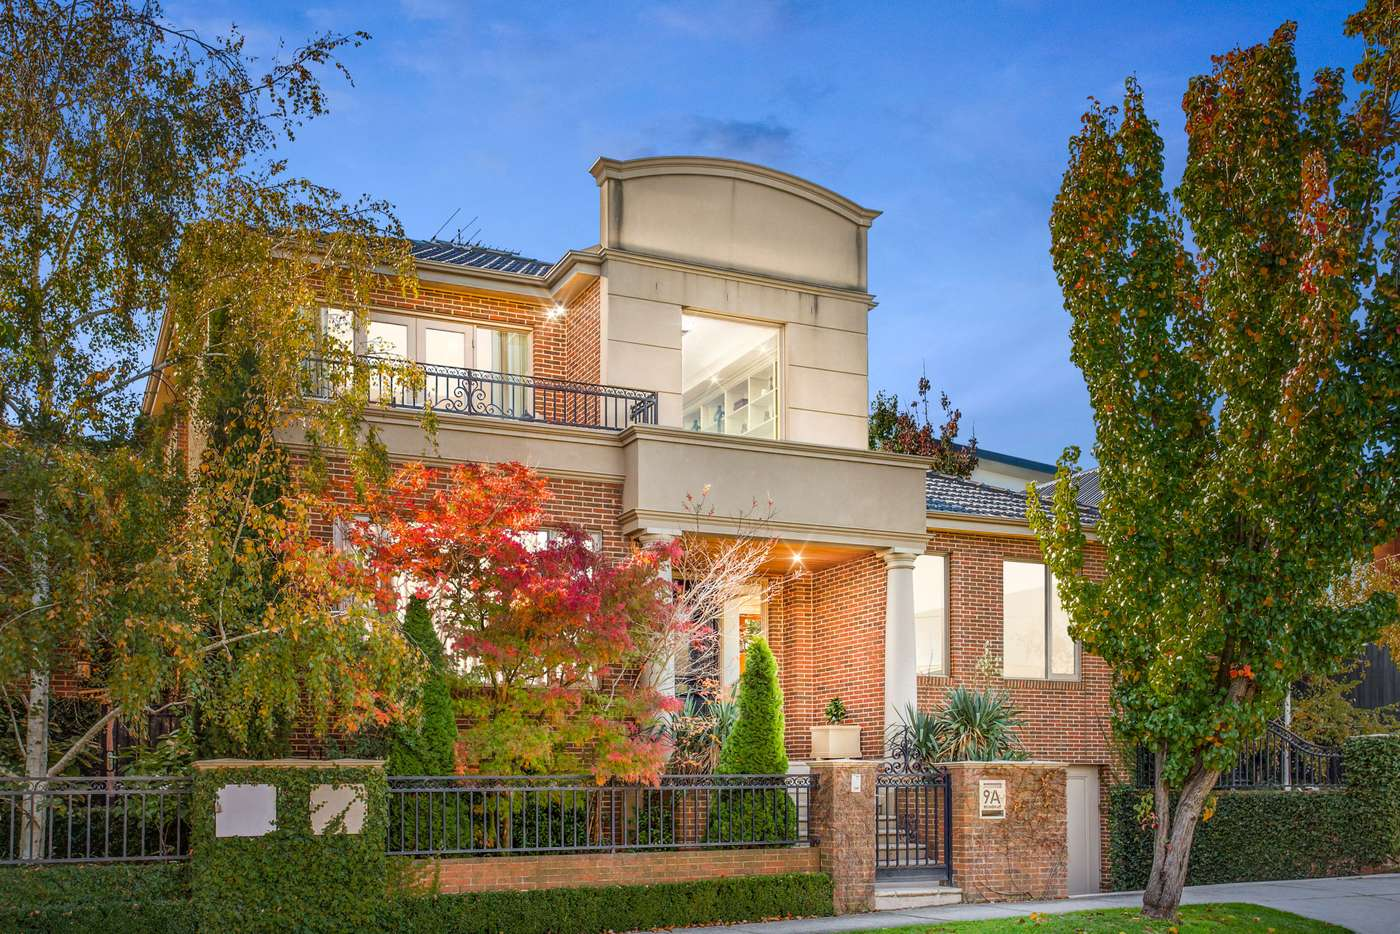 Main view of Homely house listing, 9a Mowbray Street, Hawthorn East VIC 3123